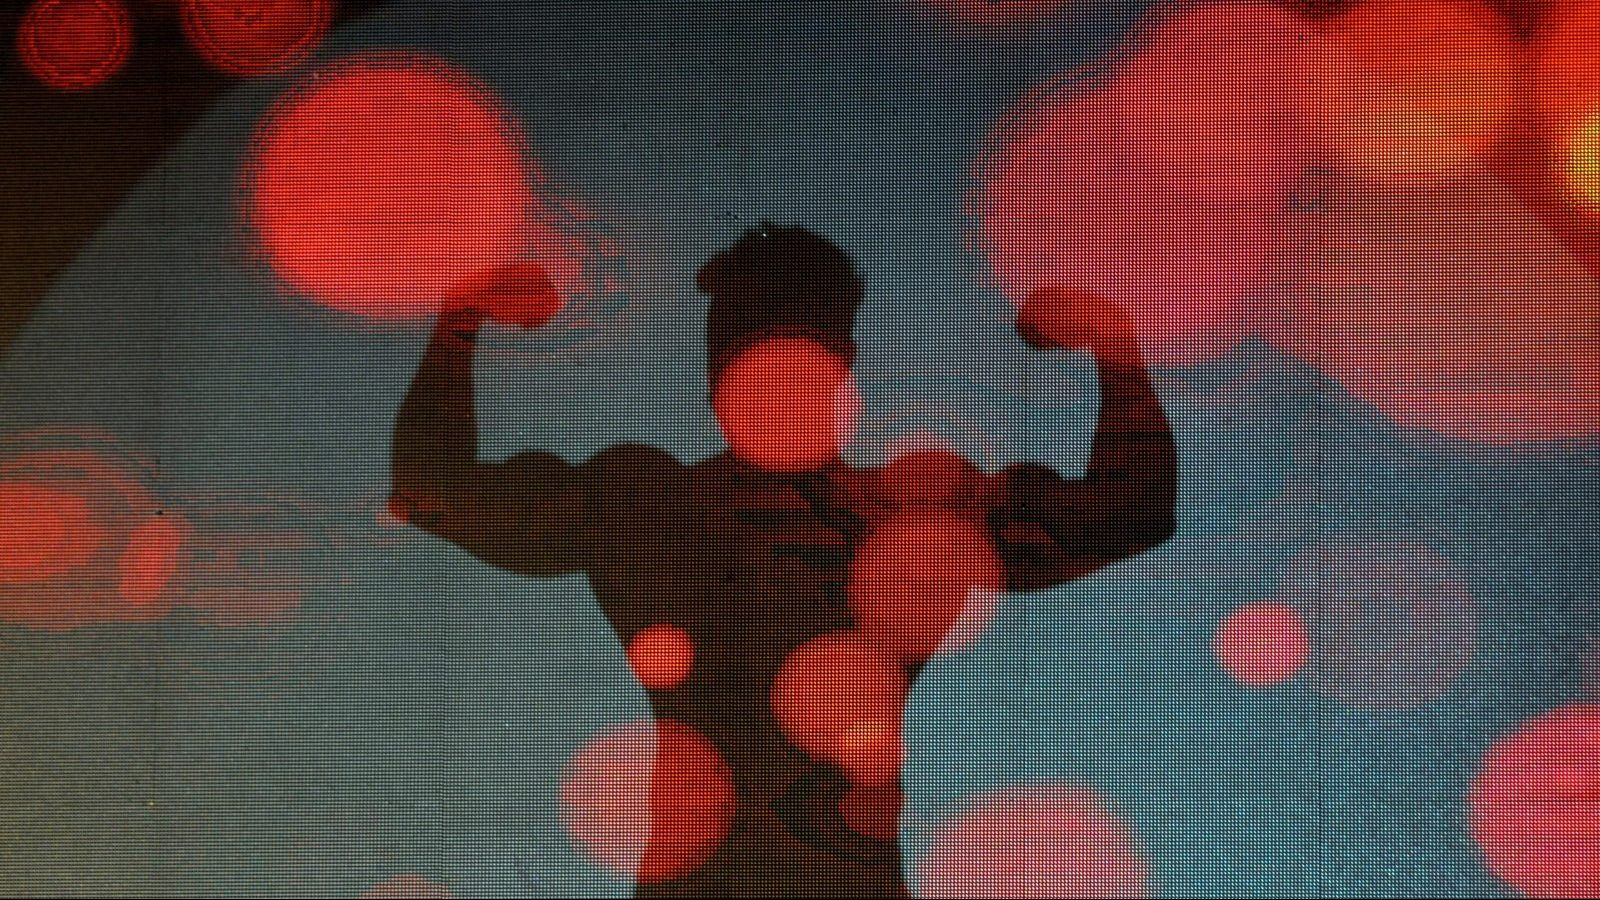 A participant casts his shadow on a screen as he flexes his muscles during a bodybuilding competition in Bengaluru, India, June 25, 2016. REUTERS/Abhishek N. Chinnappa - D1BETLYXJZAA